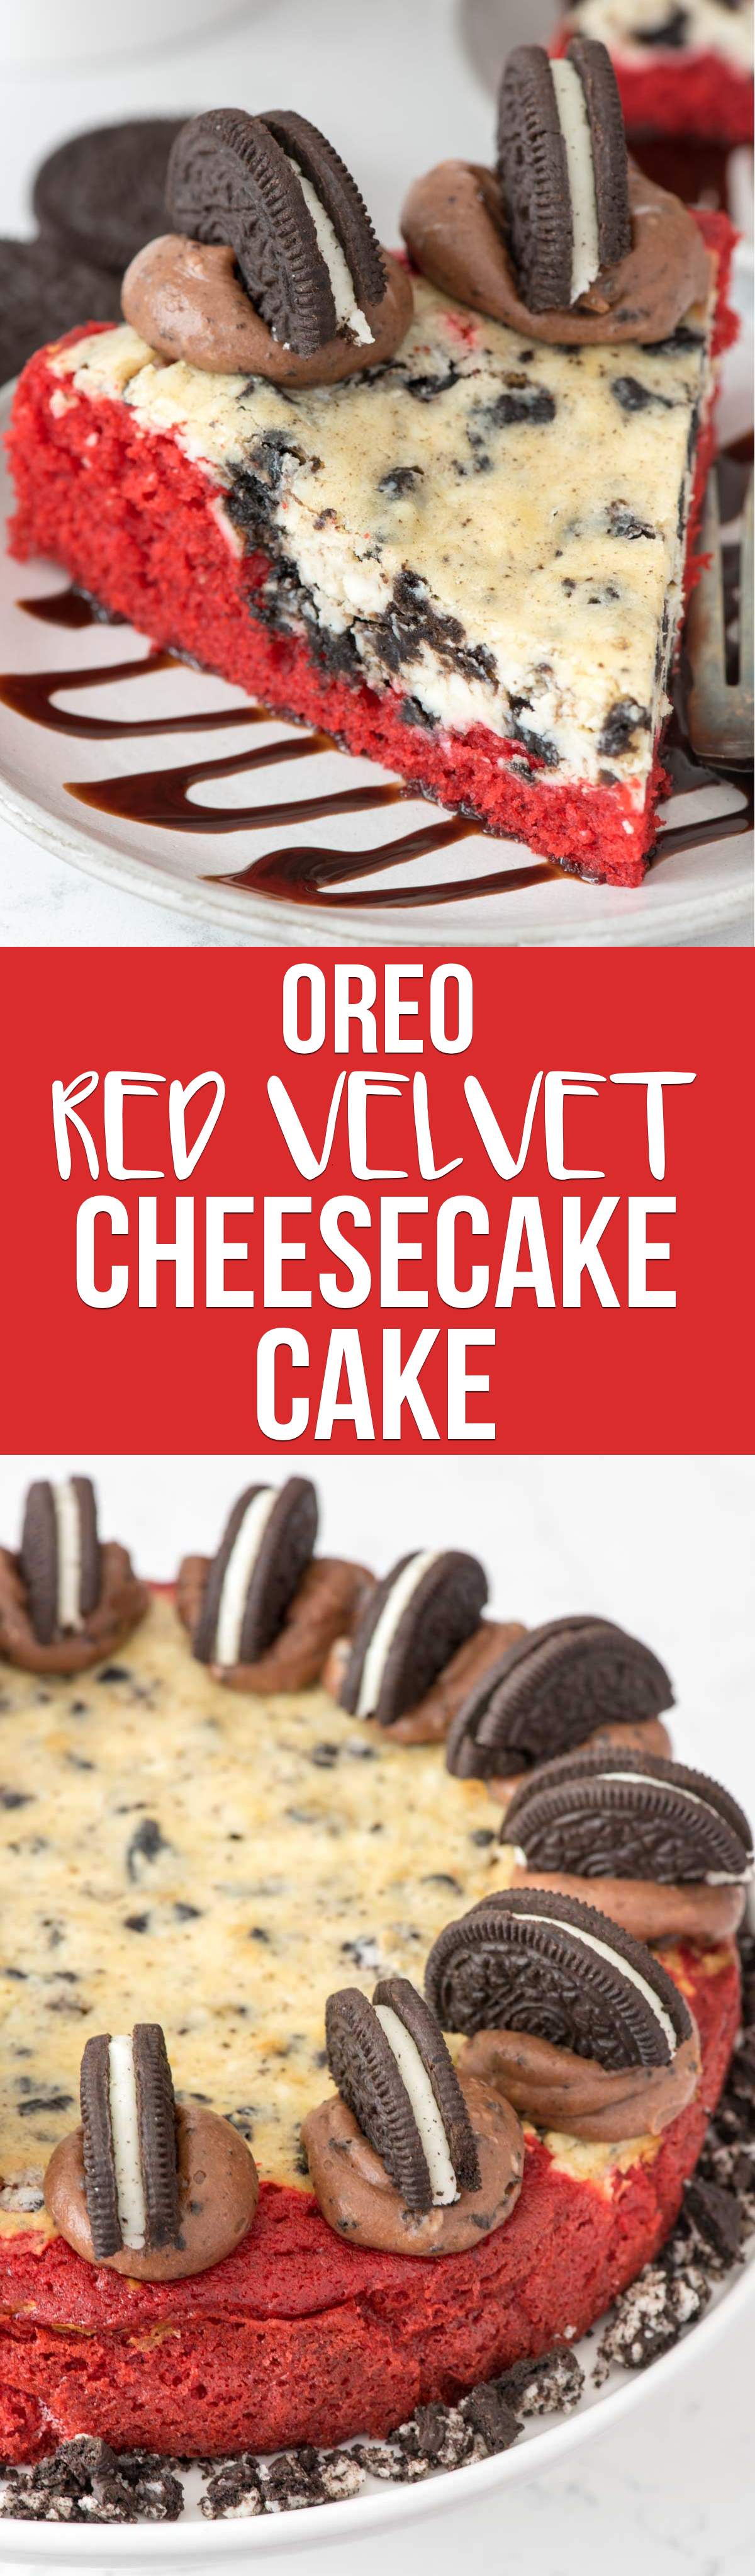 Red Velvet Oreo Cheesecake Cake - this decadent cake recipe combines homemade red velvet cake with a cheesecake layer, chocolate cream cheese frosting, and OREOS!